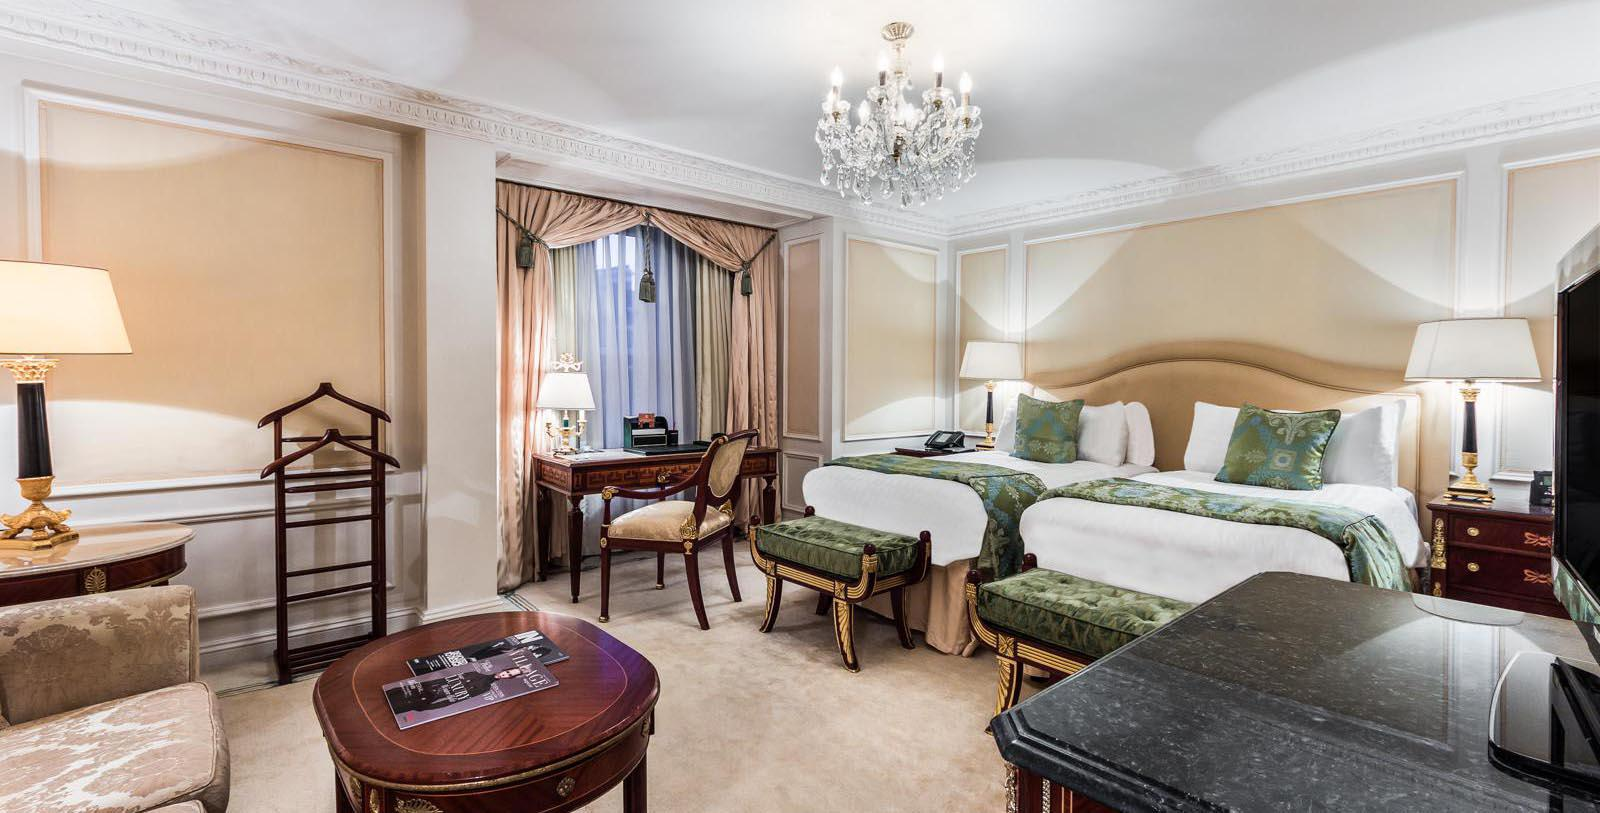 Image of Double Bed Guestroom at The Bentley London, 1880, Member of Historic Hotels Worldwide, in London, England, United Kingdom, Accommodations